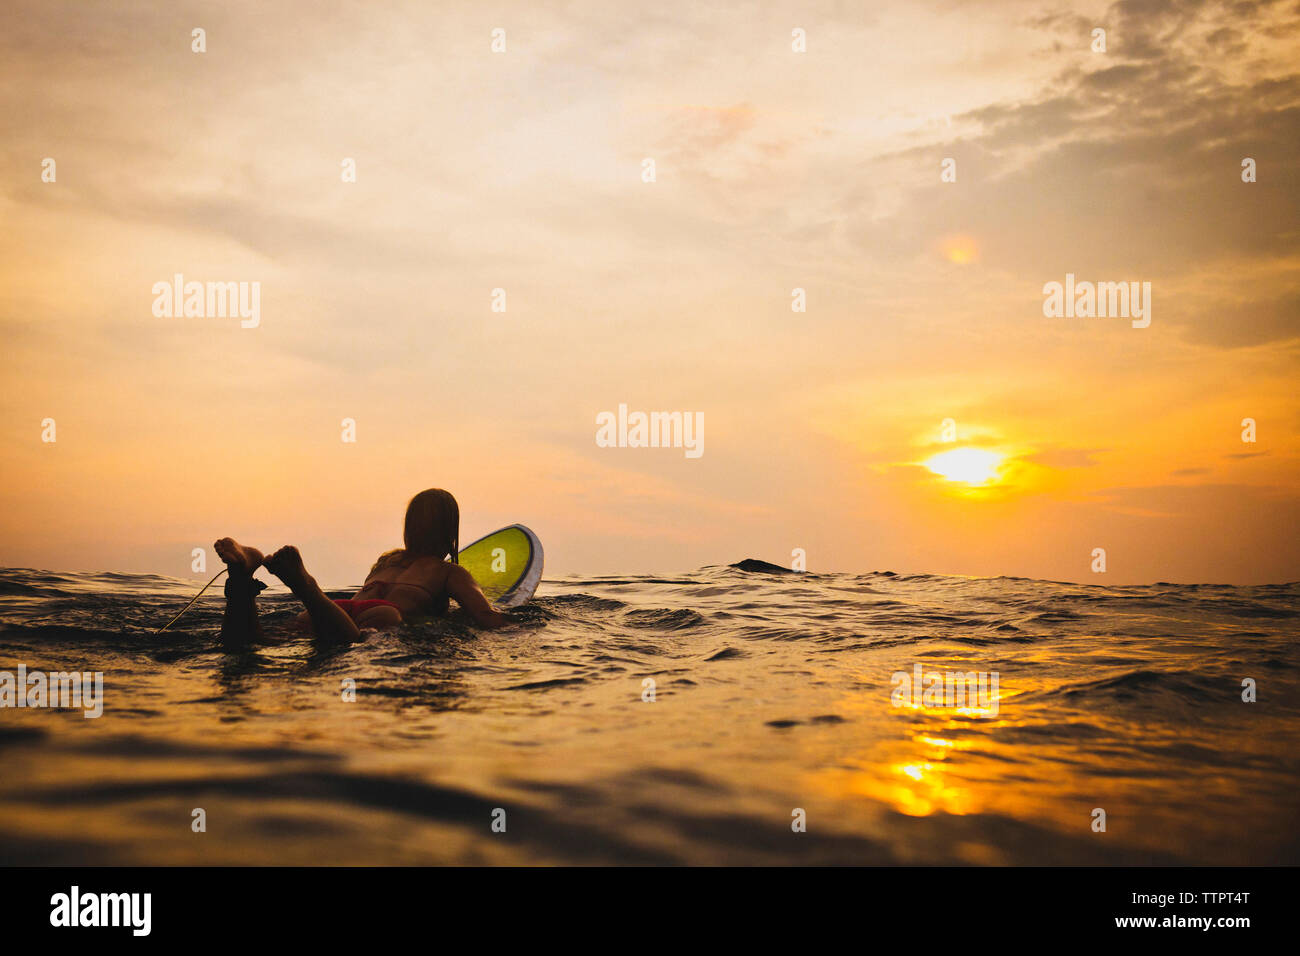 Woman lying on surfboard in sea during sunset - Stock Image